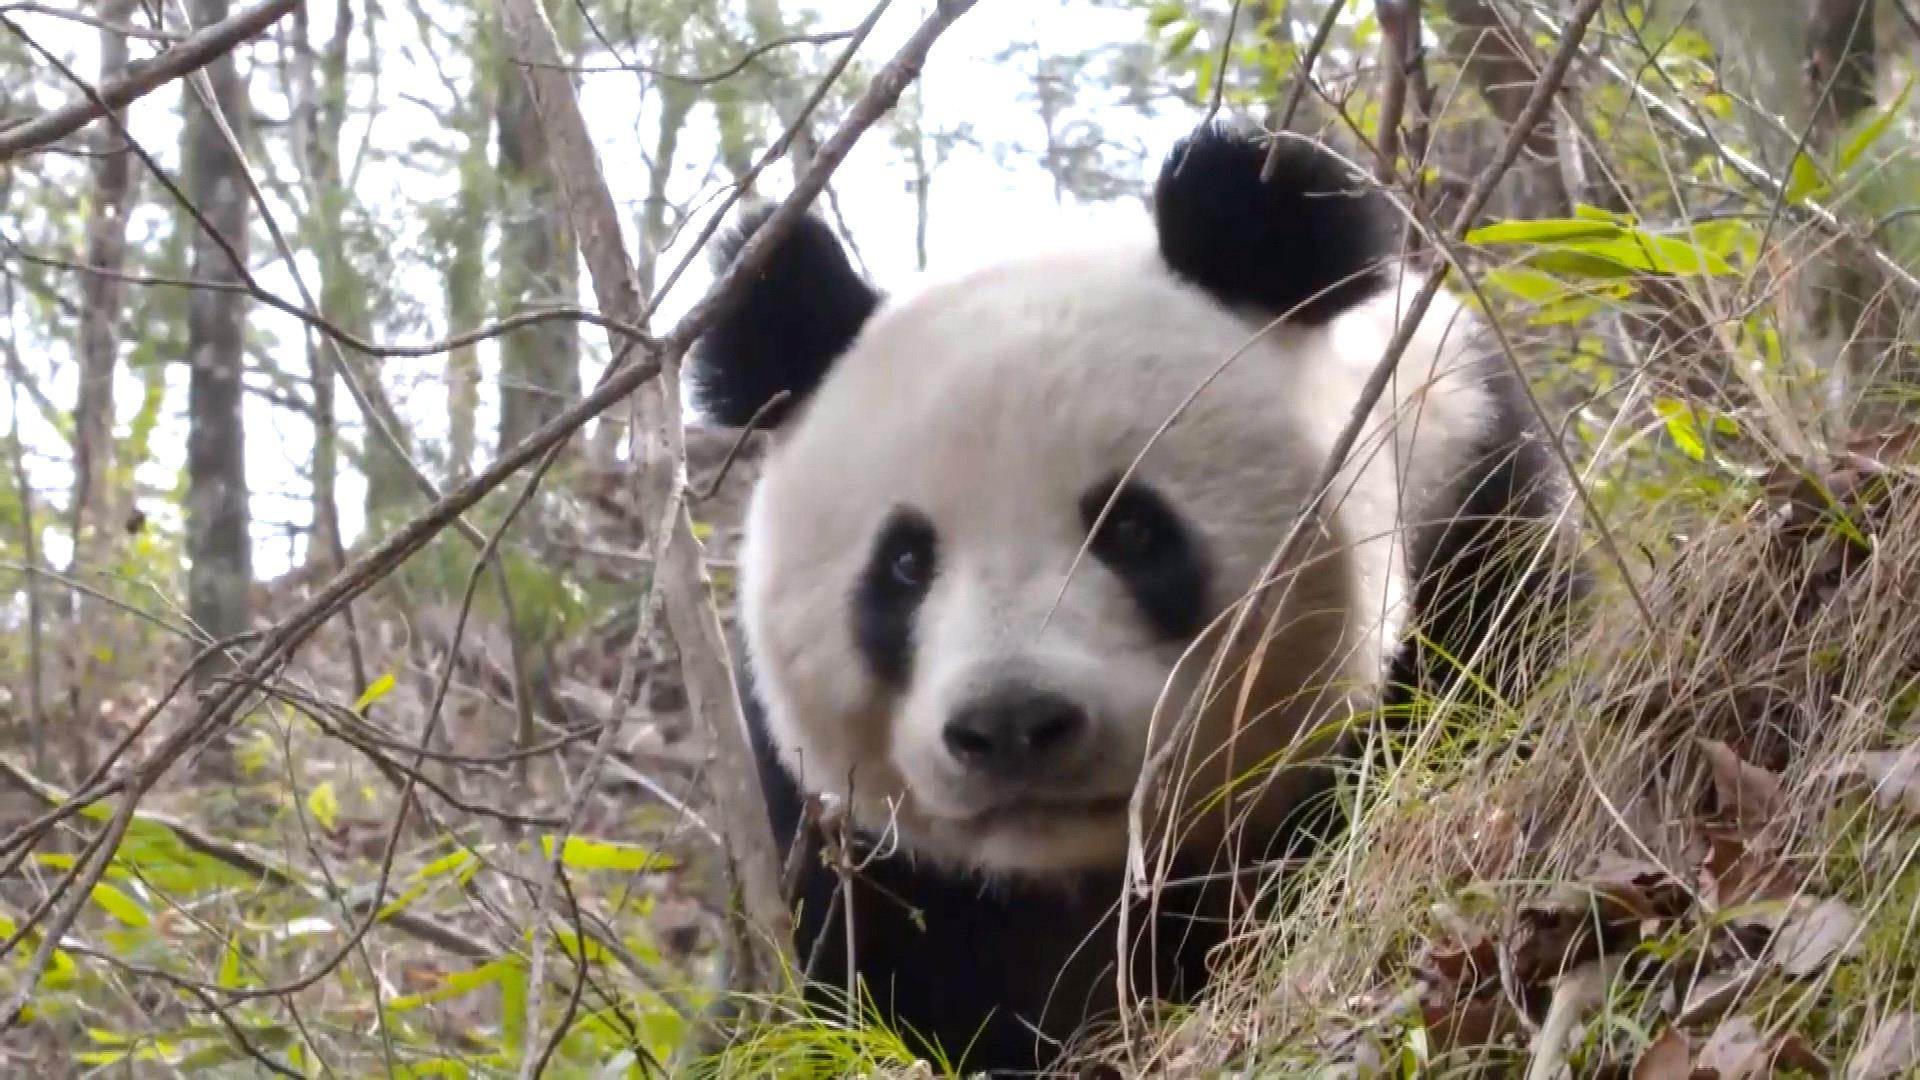 Rare Video Captures Giant Panda, Cub in Wild